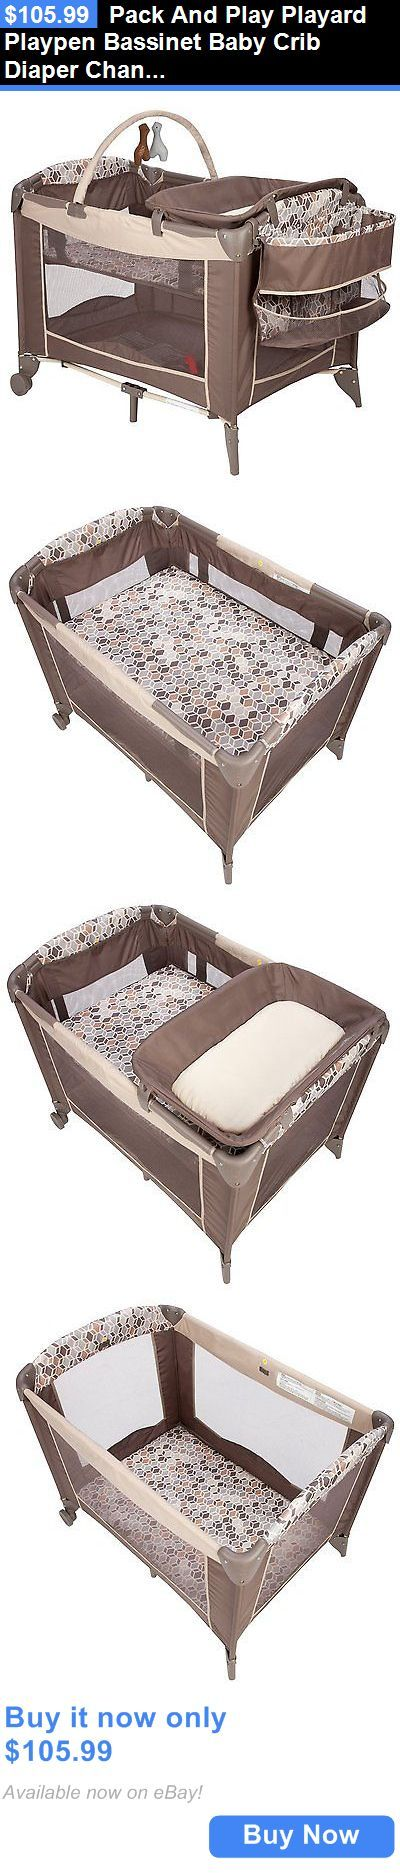 Baby Nursery: Pack And Play Playard Playpen Bassinet Baby Crib Diaper Changer Toddler Bedding BUY IT NOW ONLY: $105.99